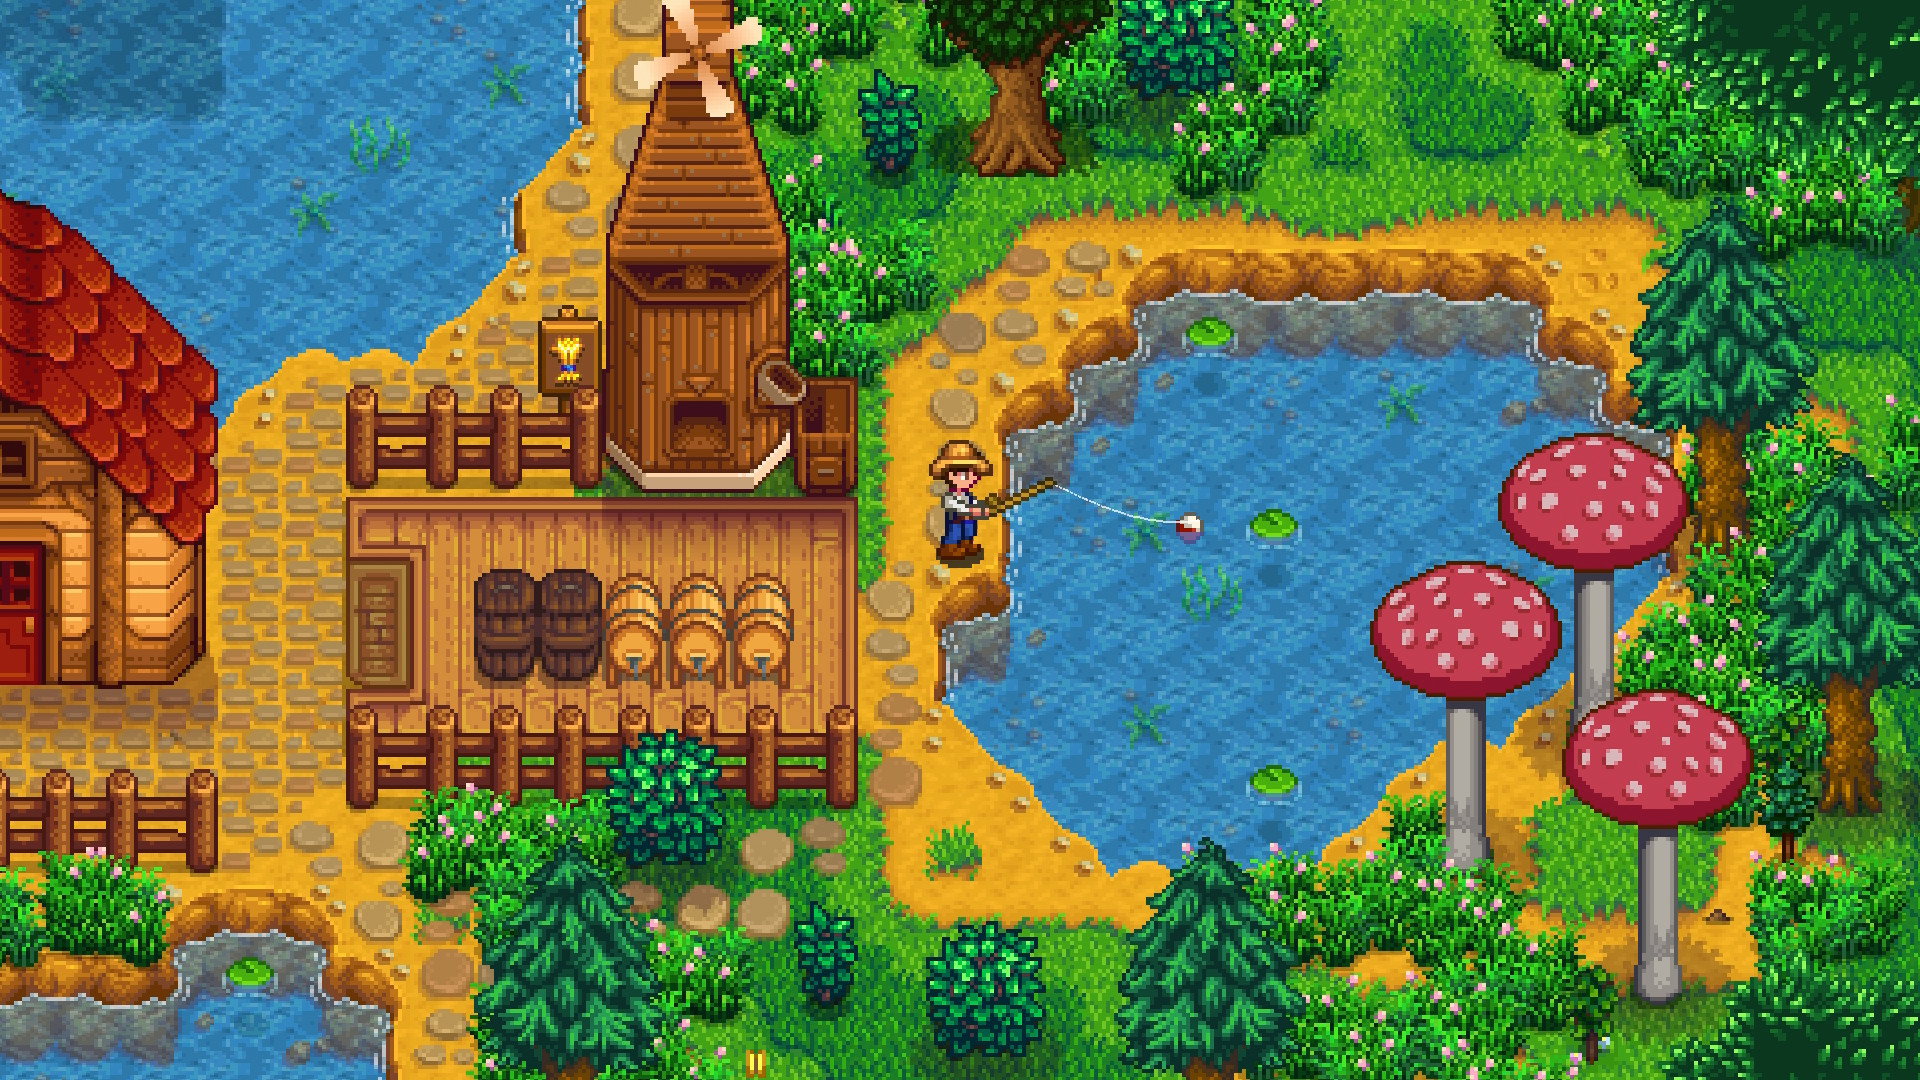 Stardew Valley launching on iOS soon